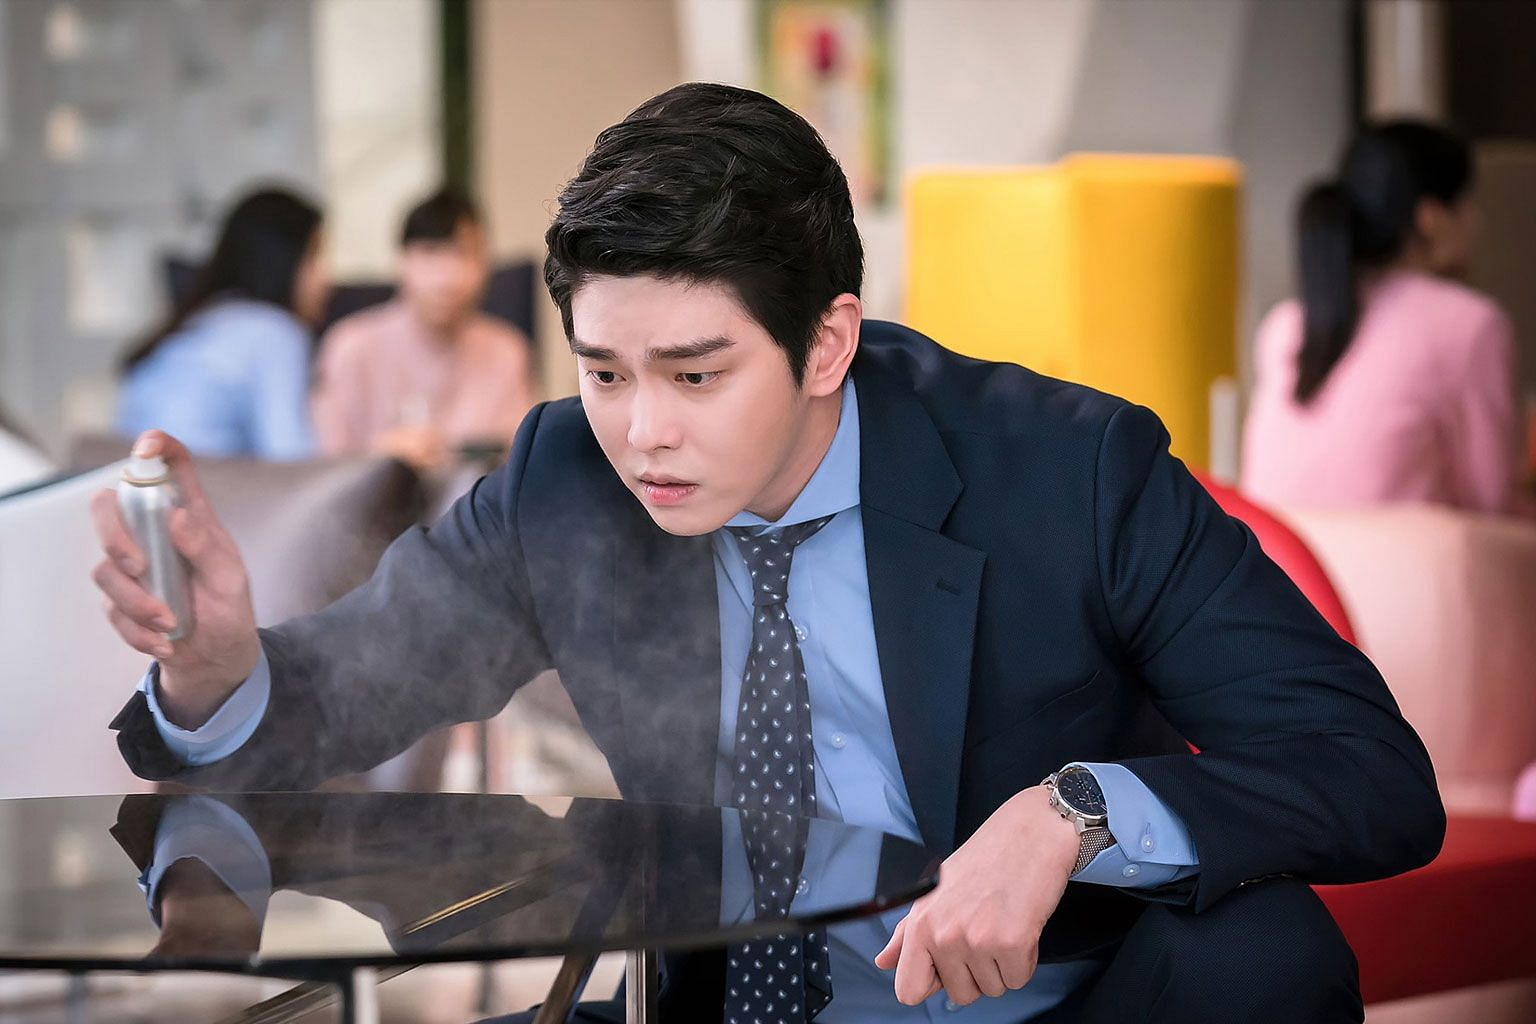 Yoon Kyun-sang (left) plays a germaphobe who runs a cleaning company in Clean With Passion For Now, while Song Hye-kyo and Park Bo-gum (above left and right) star in Encounter.